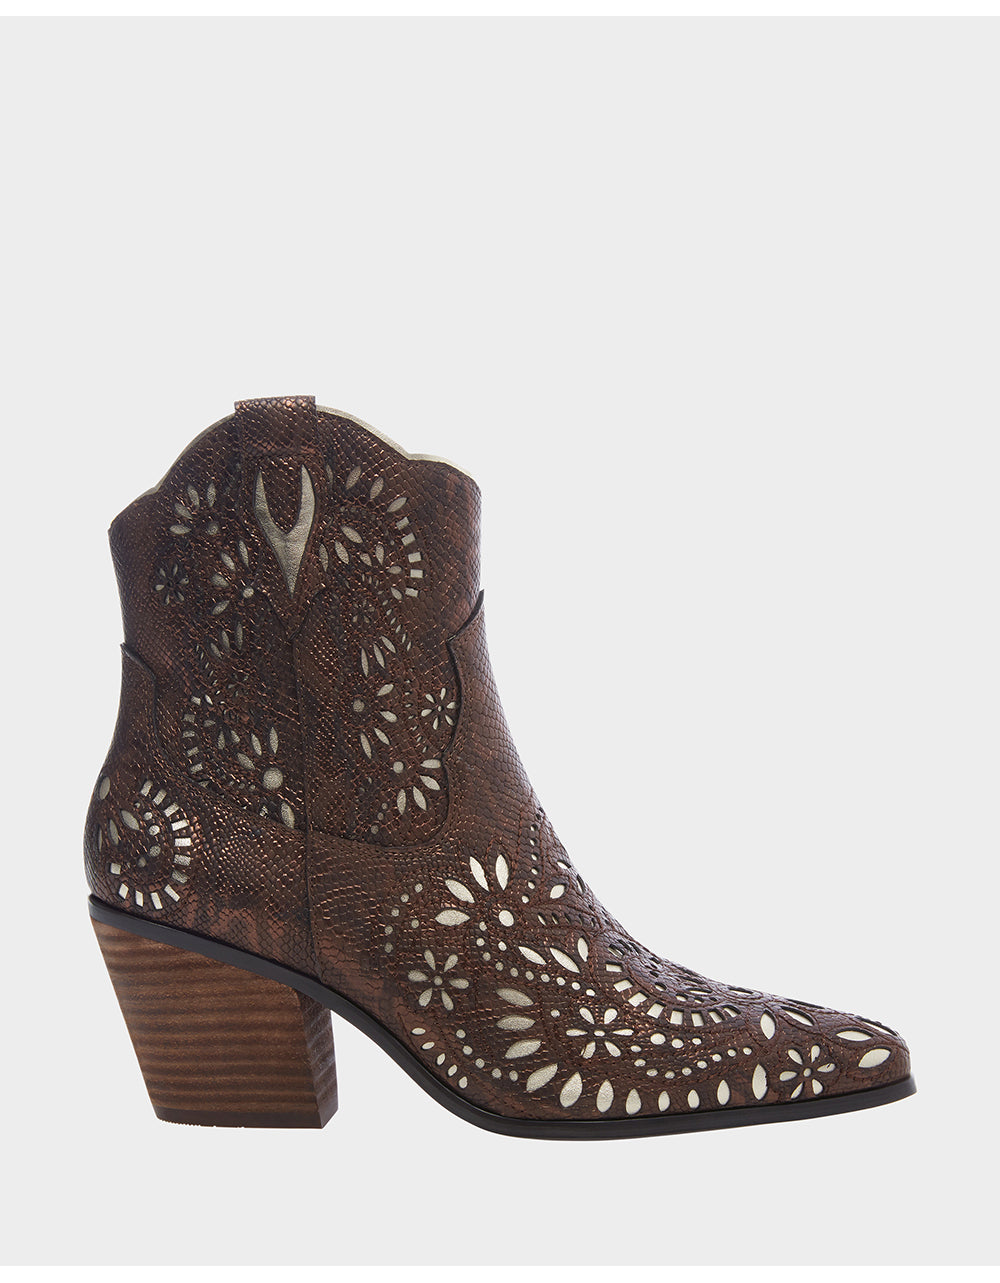 MOZART BROWN - SHOES - Betsey Johnson